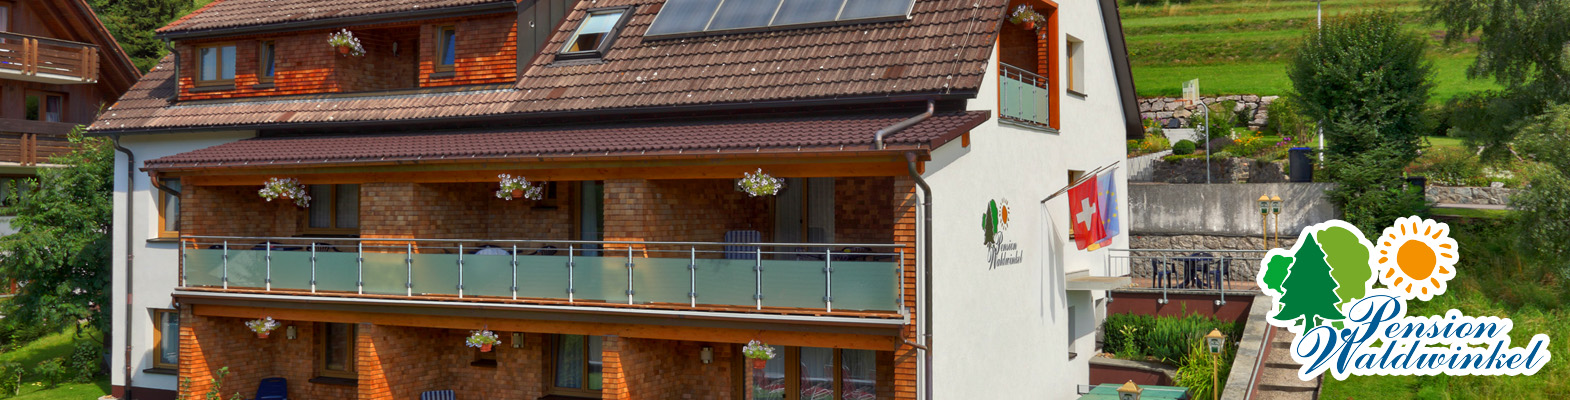 Pension Waldwinkel - Your home in the Black Forest